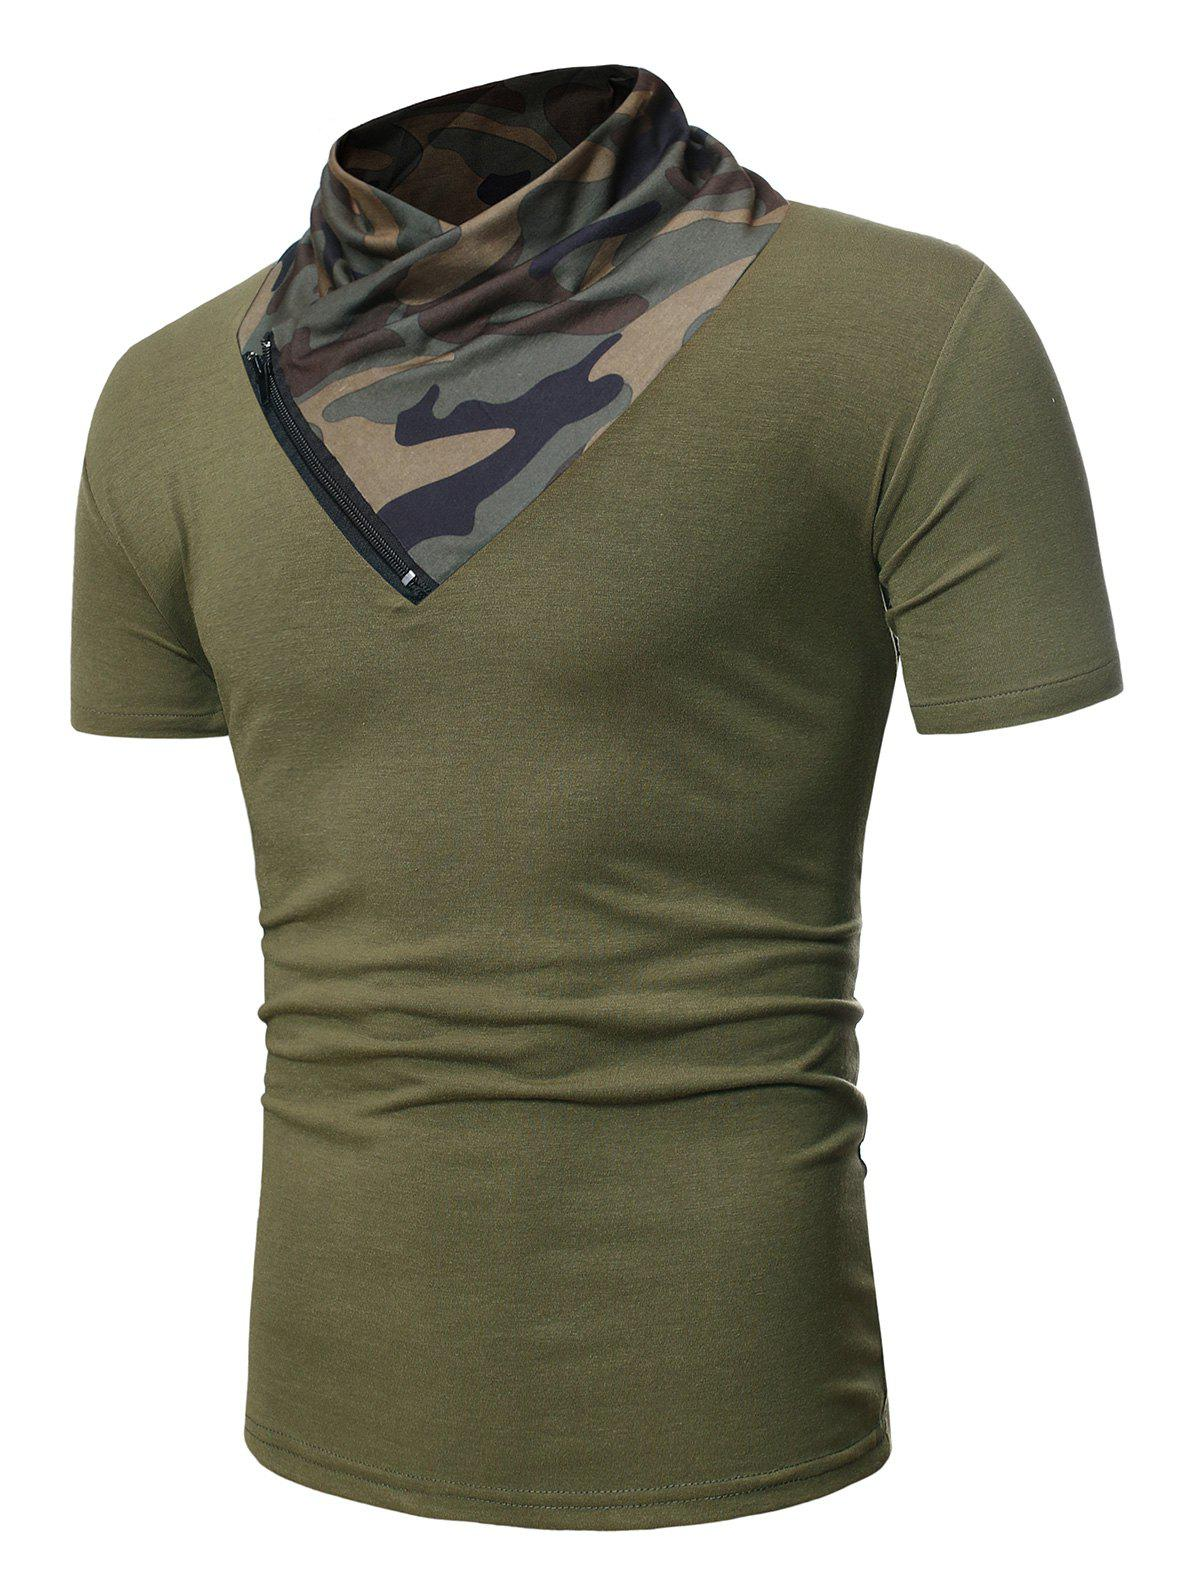 Short Sleeves Camo Panel Tee with Zipper - ARMY GREEN XS